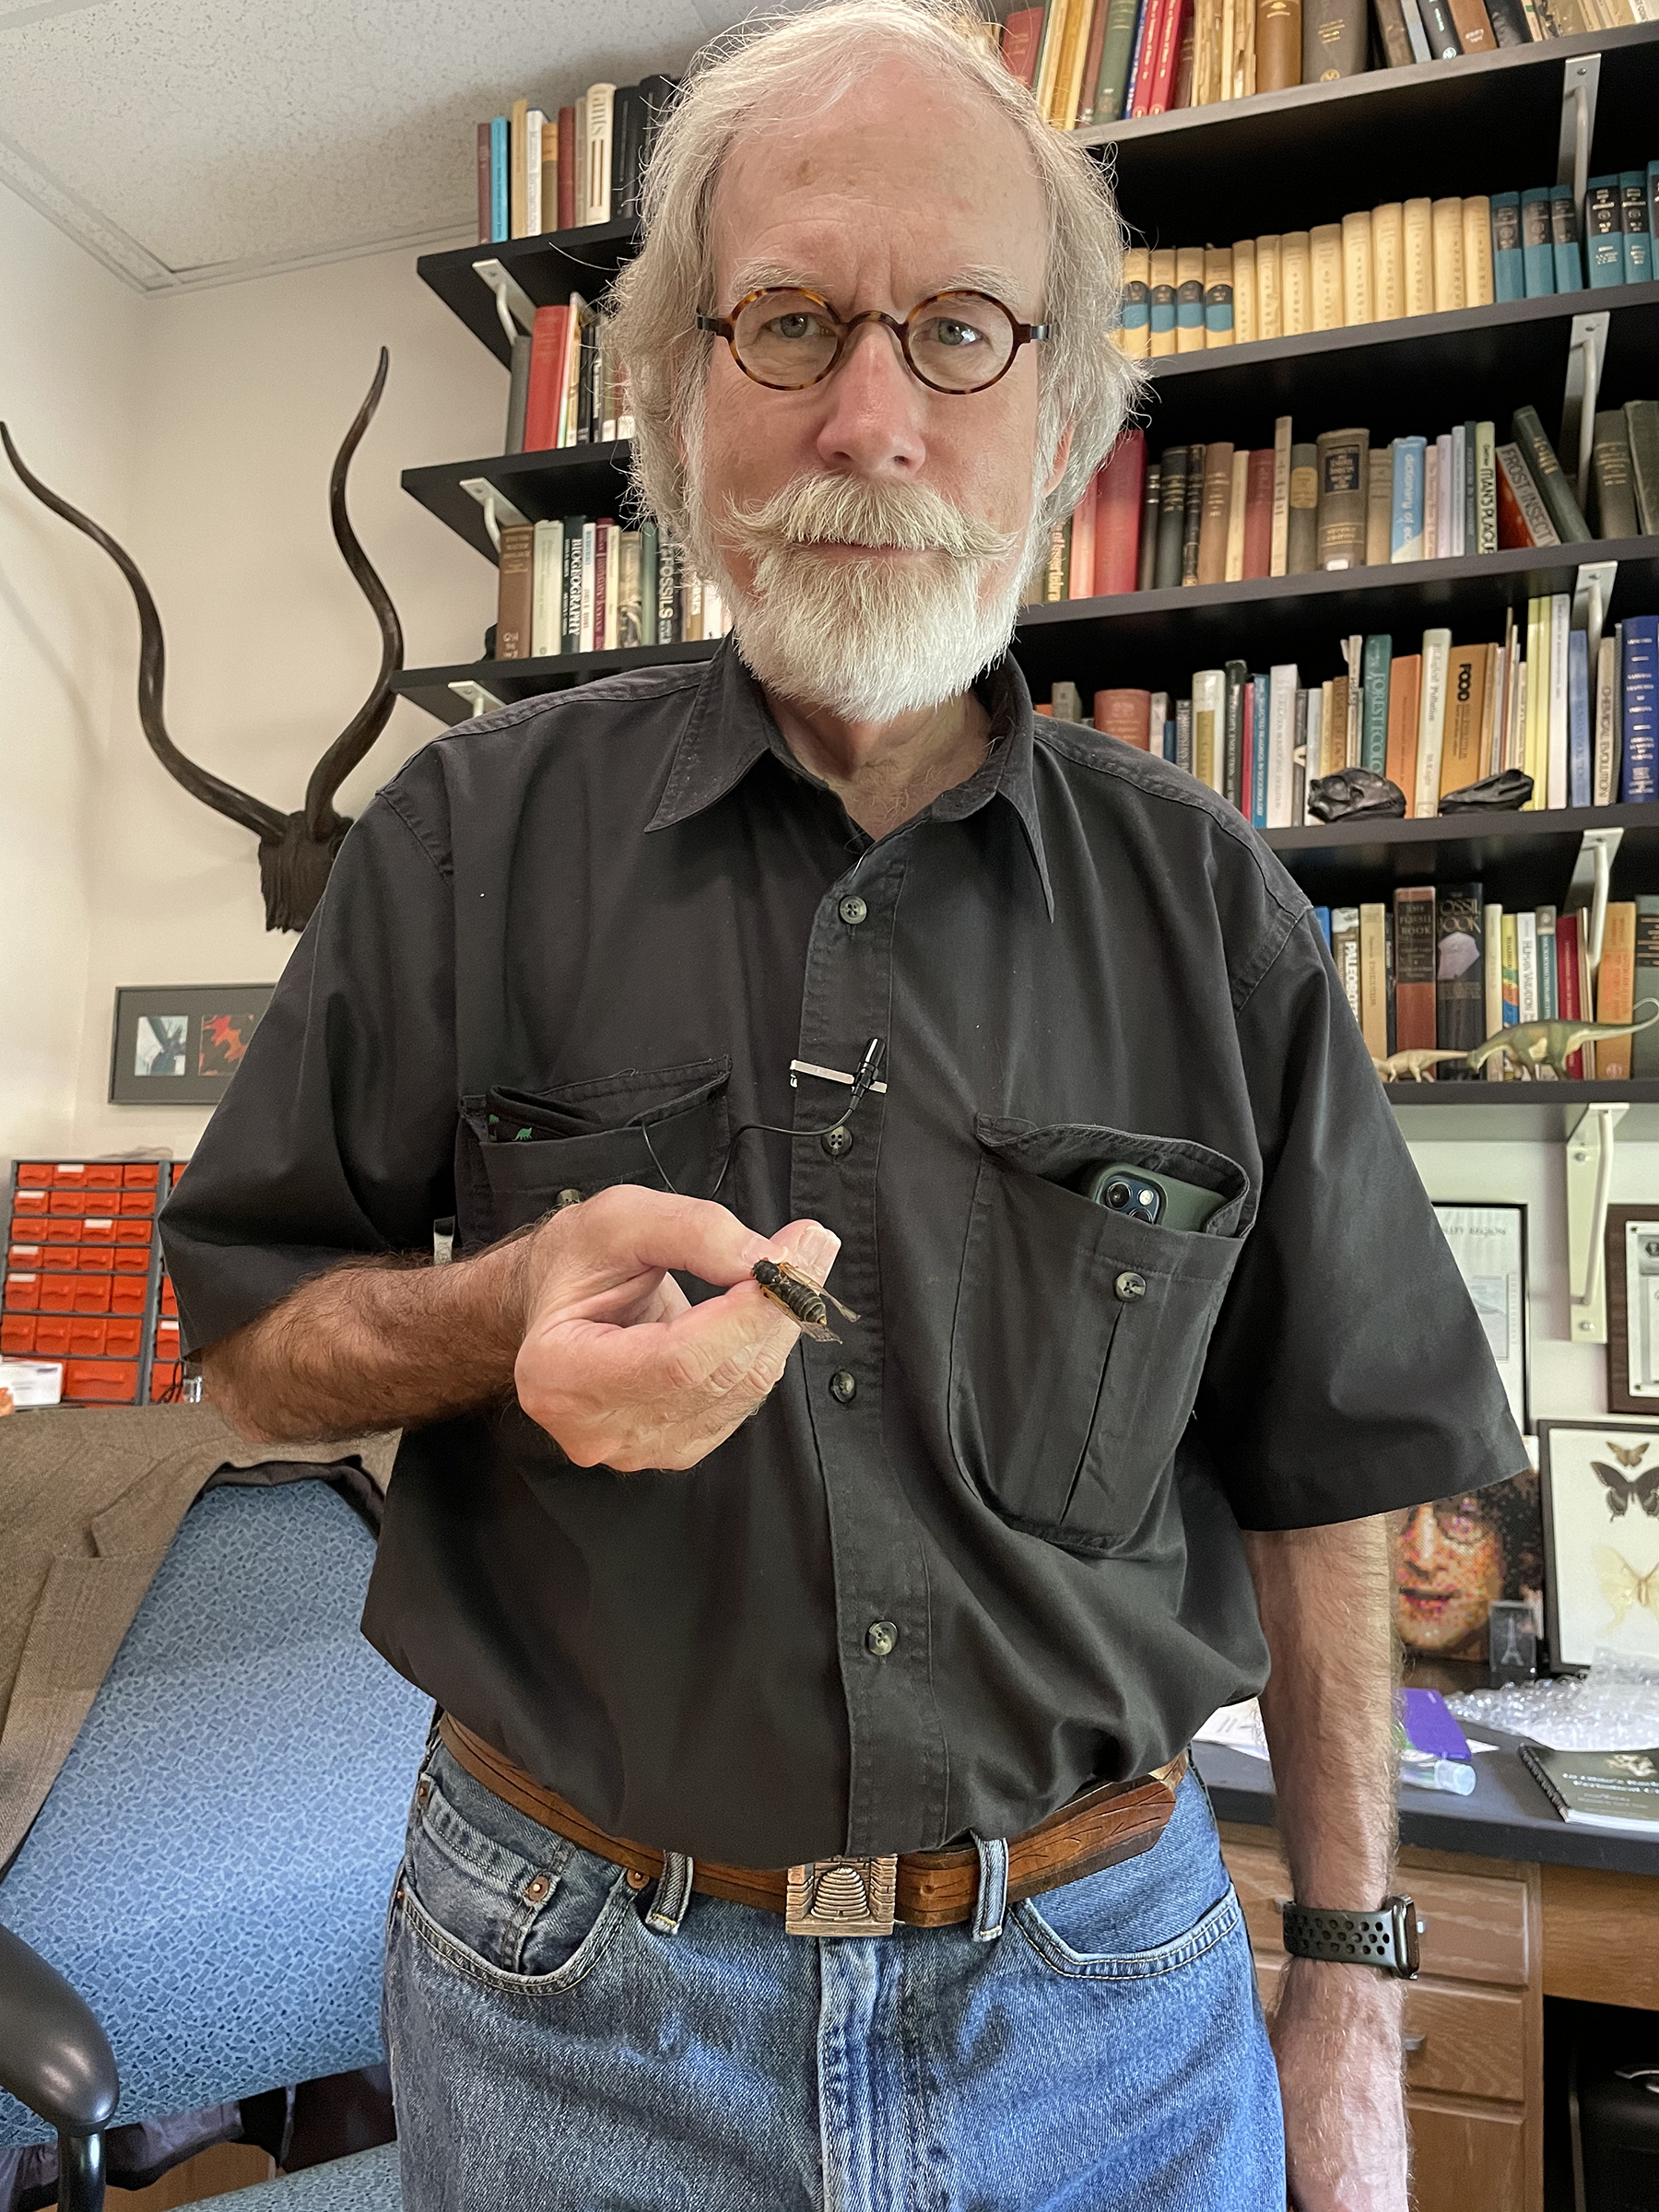 Entomologist Gene Kritsky, an expert on periodical cicadas, stands in his office at Mount St. Joseph University with a cicada specimen in hand. Photograph by Jane C. Hu